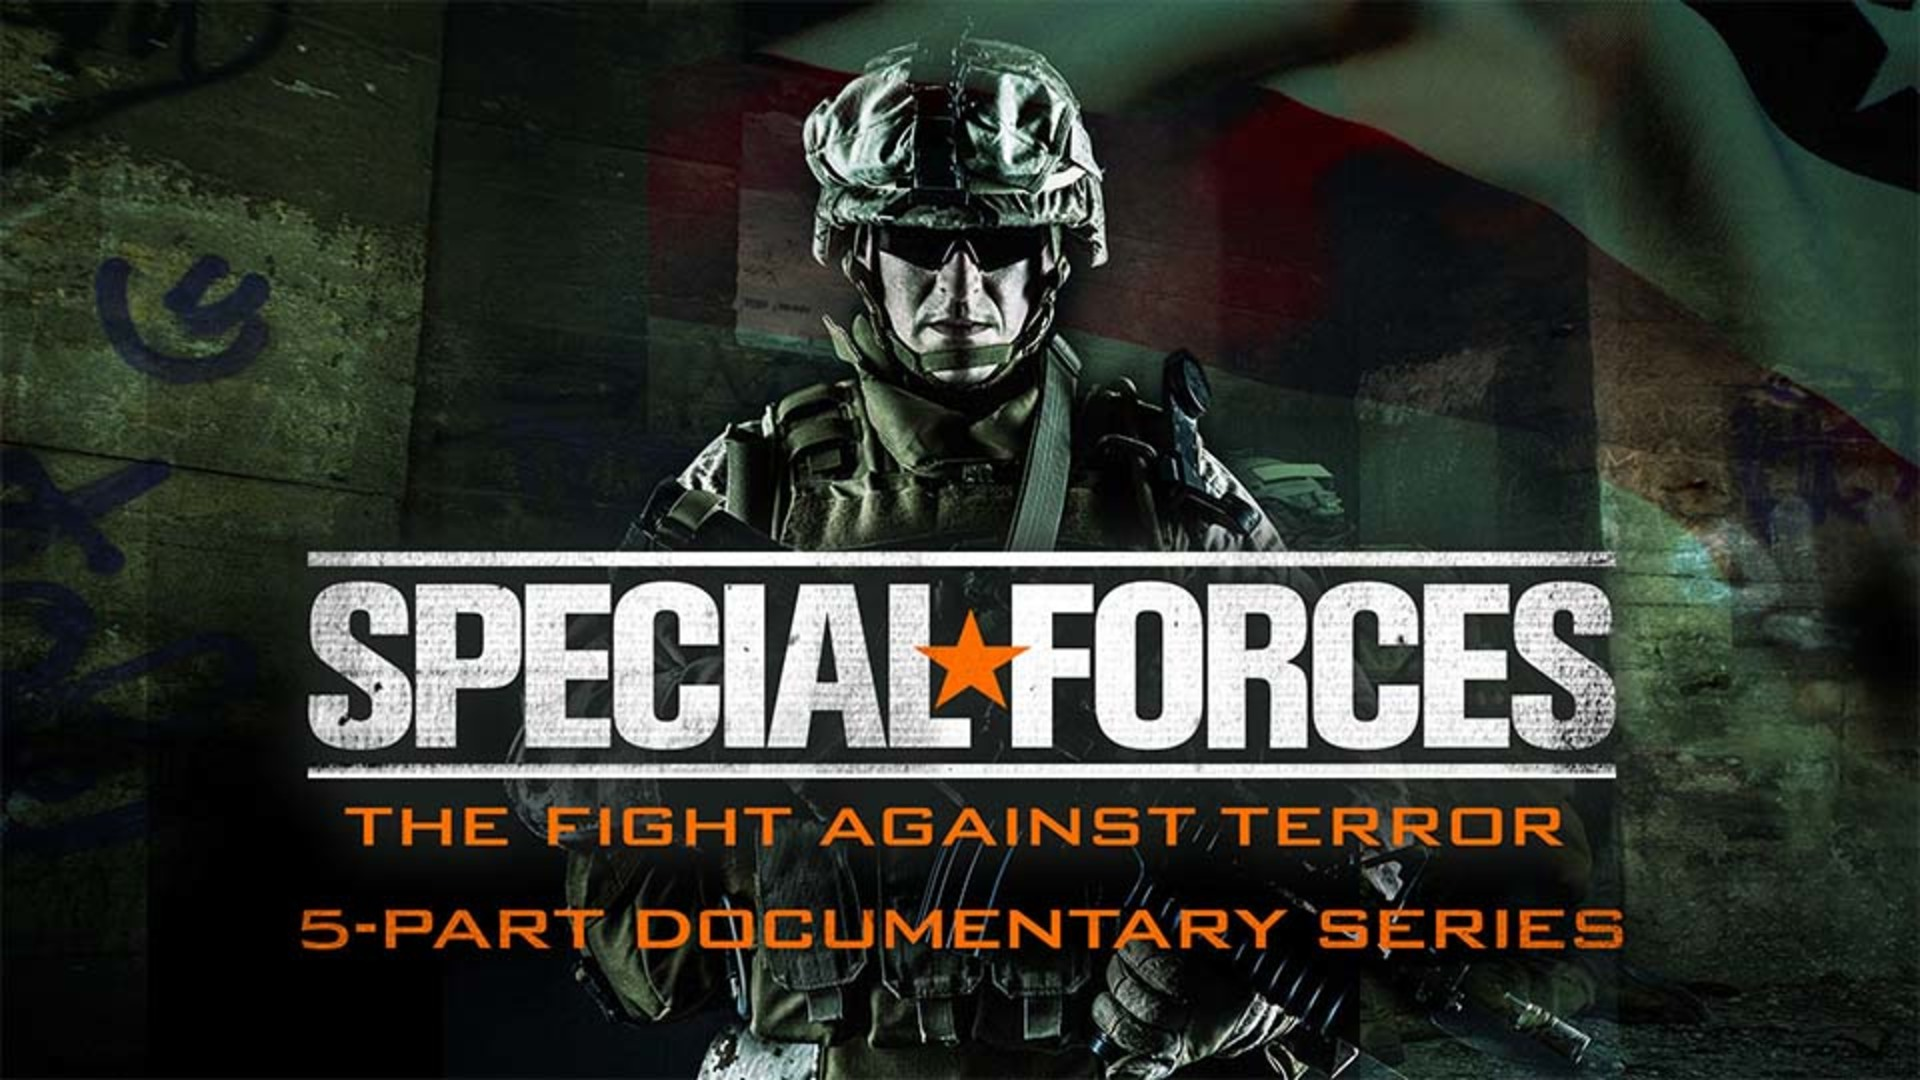 Special Forces Army series on valorous tv heroic movies